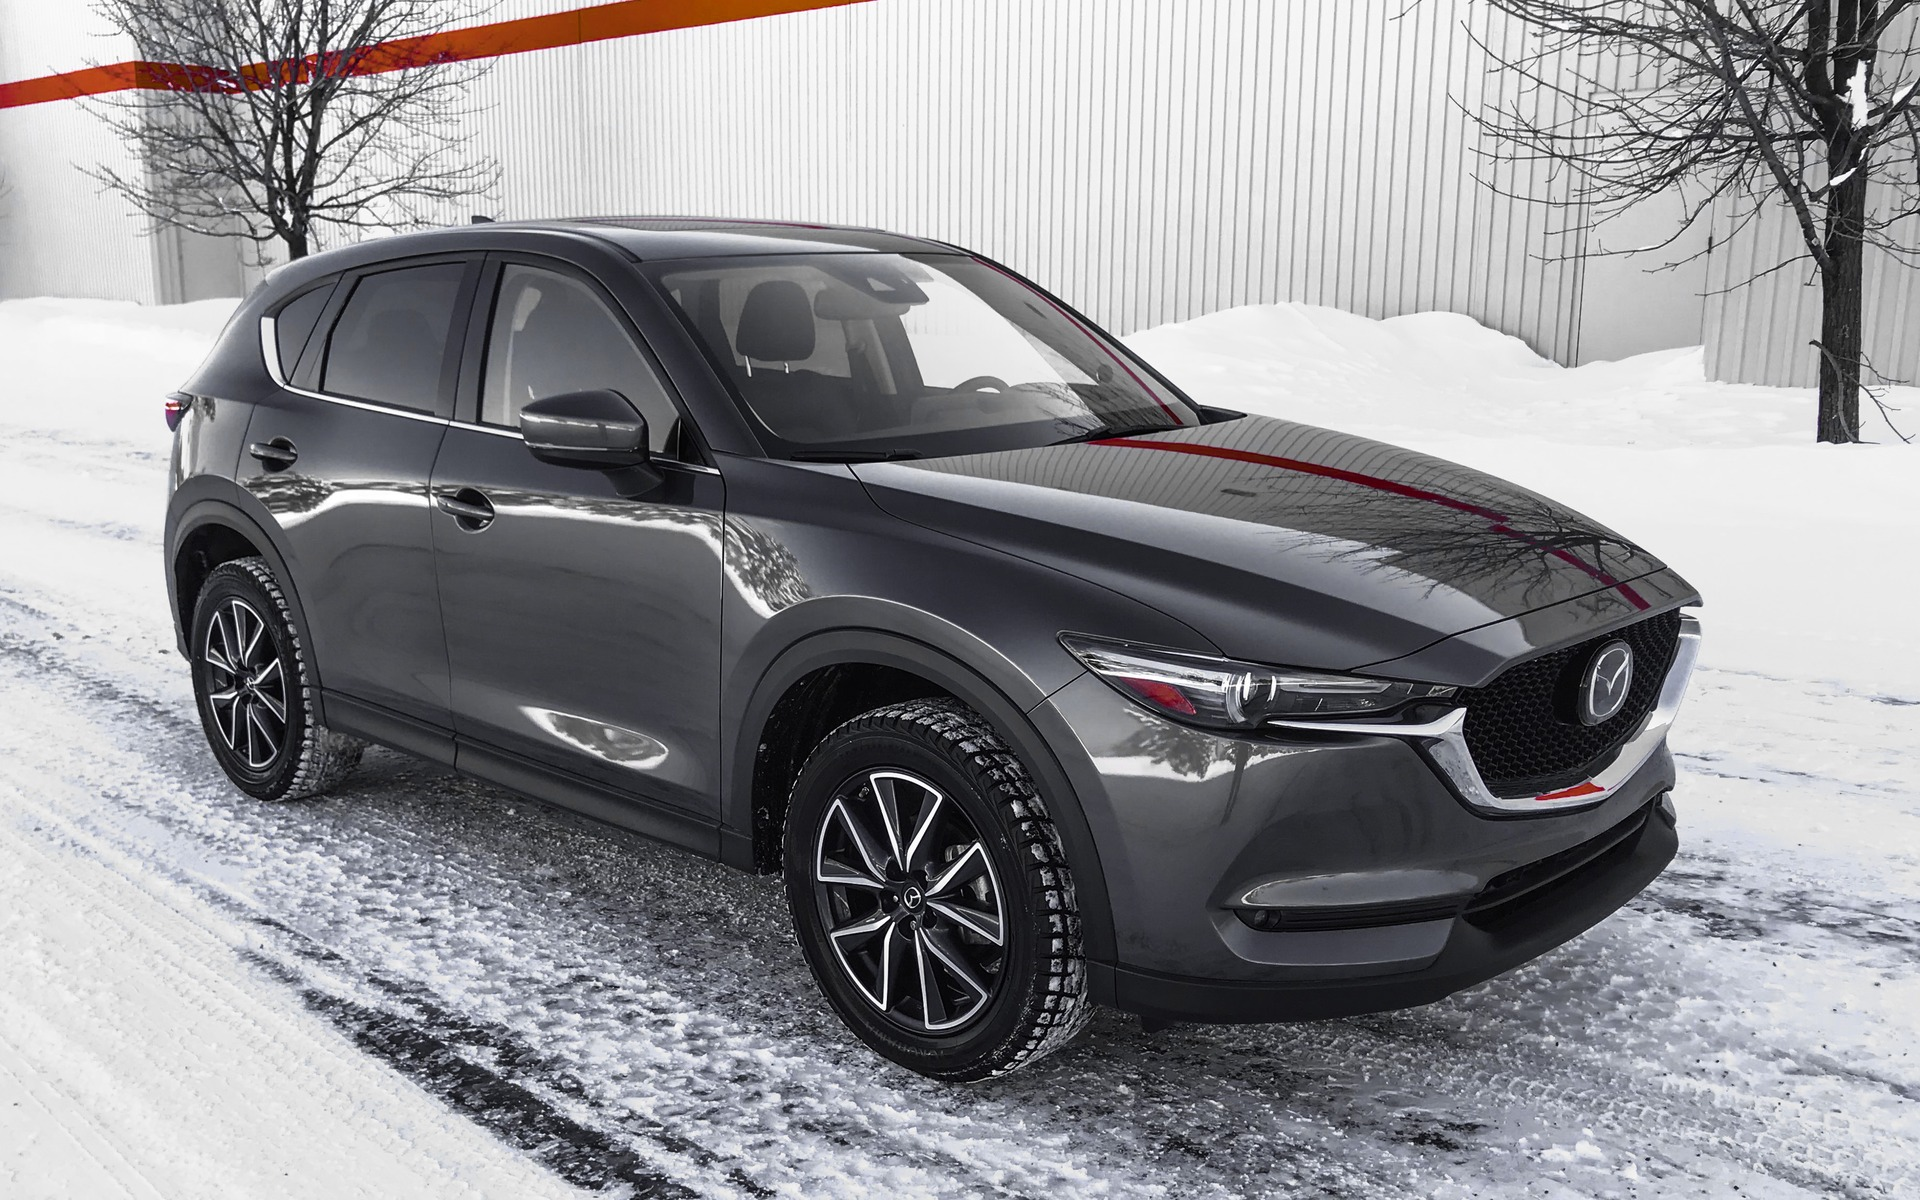 2017 mazda cx 5 ready to take on the big boys the car guide. Black Bedroom Furniture Sets. Home Design Ideas